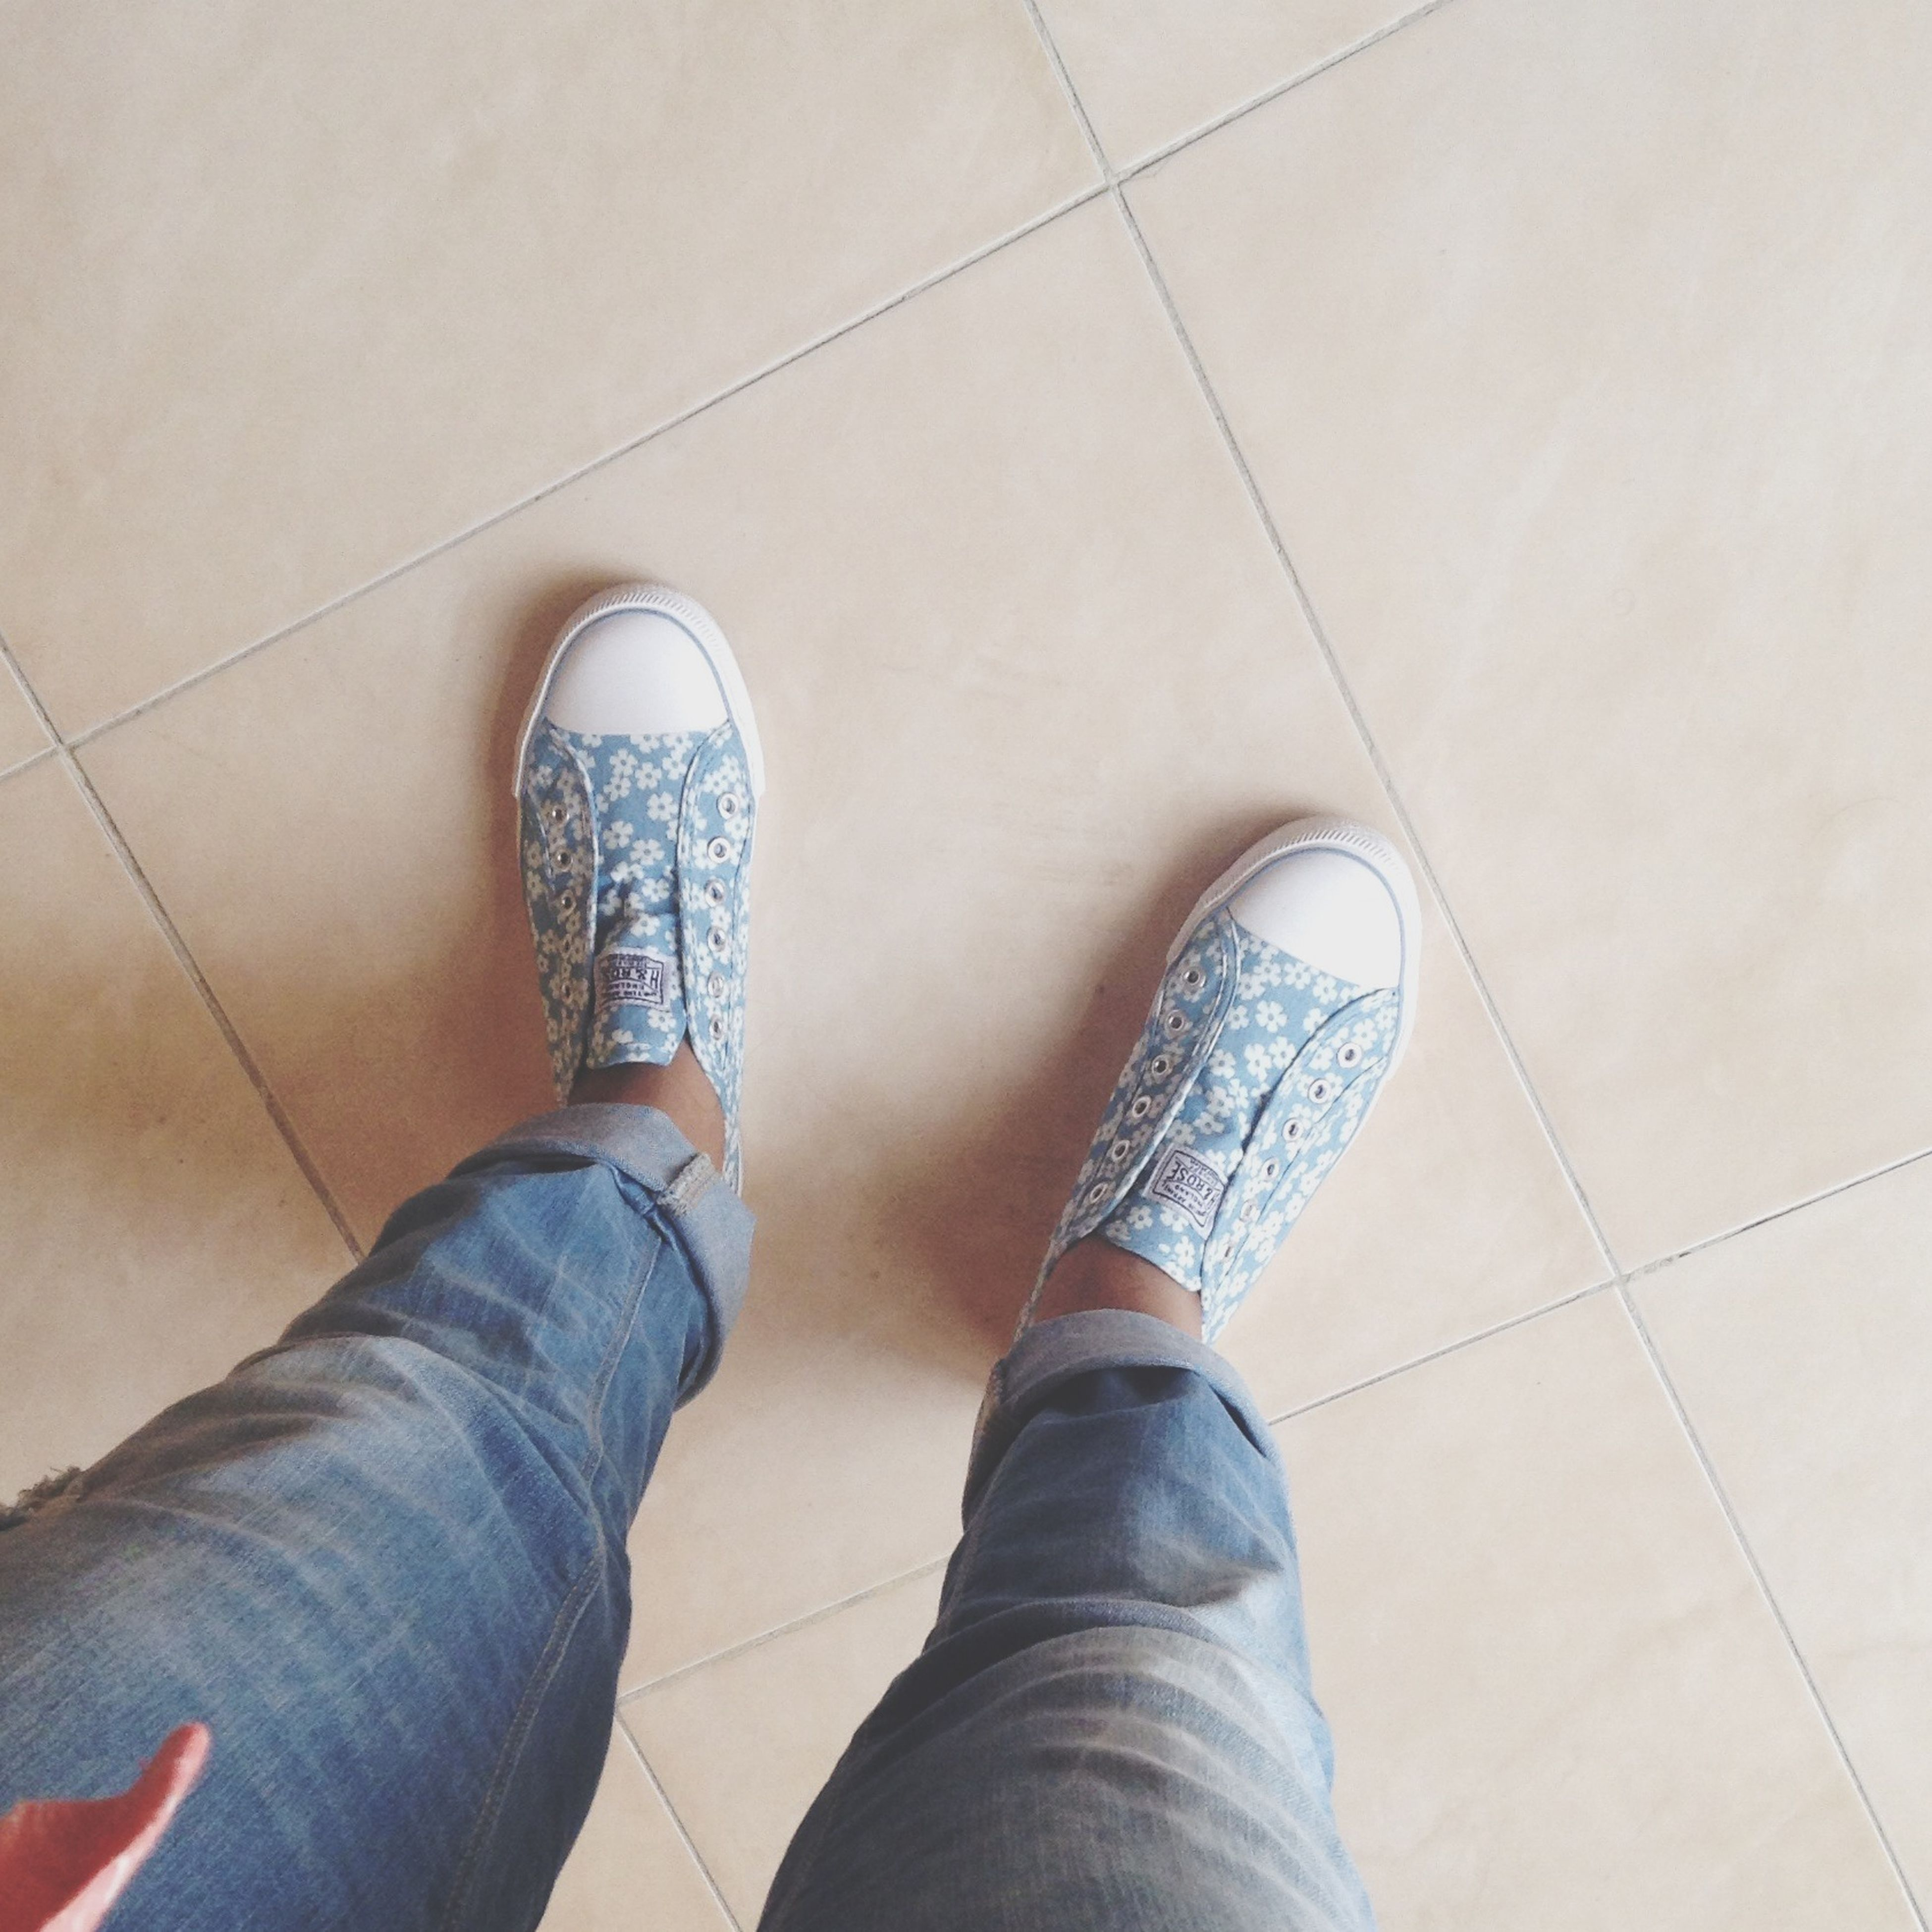 low section, person, shoe, personal perspective, footwear, human foot, high angle view, tiled floor, indoors, jeans, standing, flooring, part of, lifestyles, directly above, floor, unrecognizable person